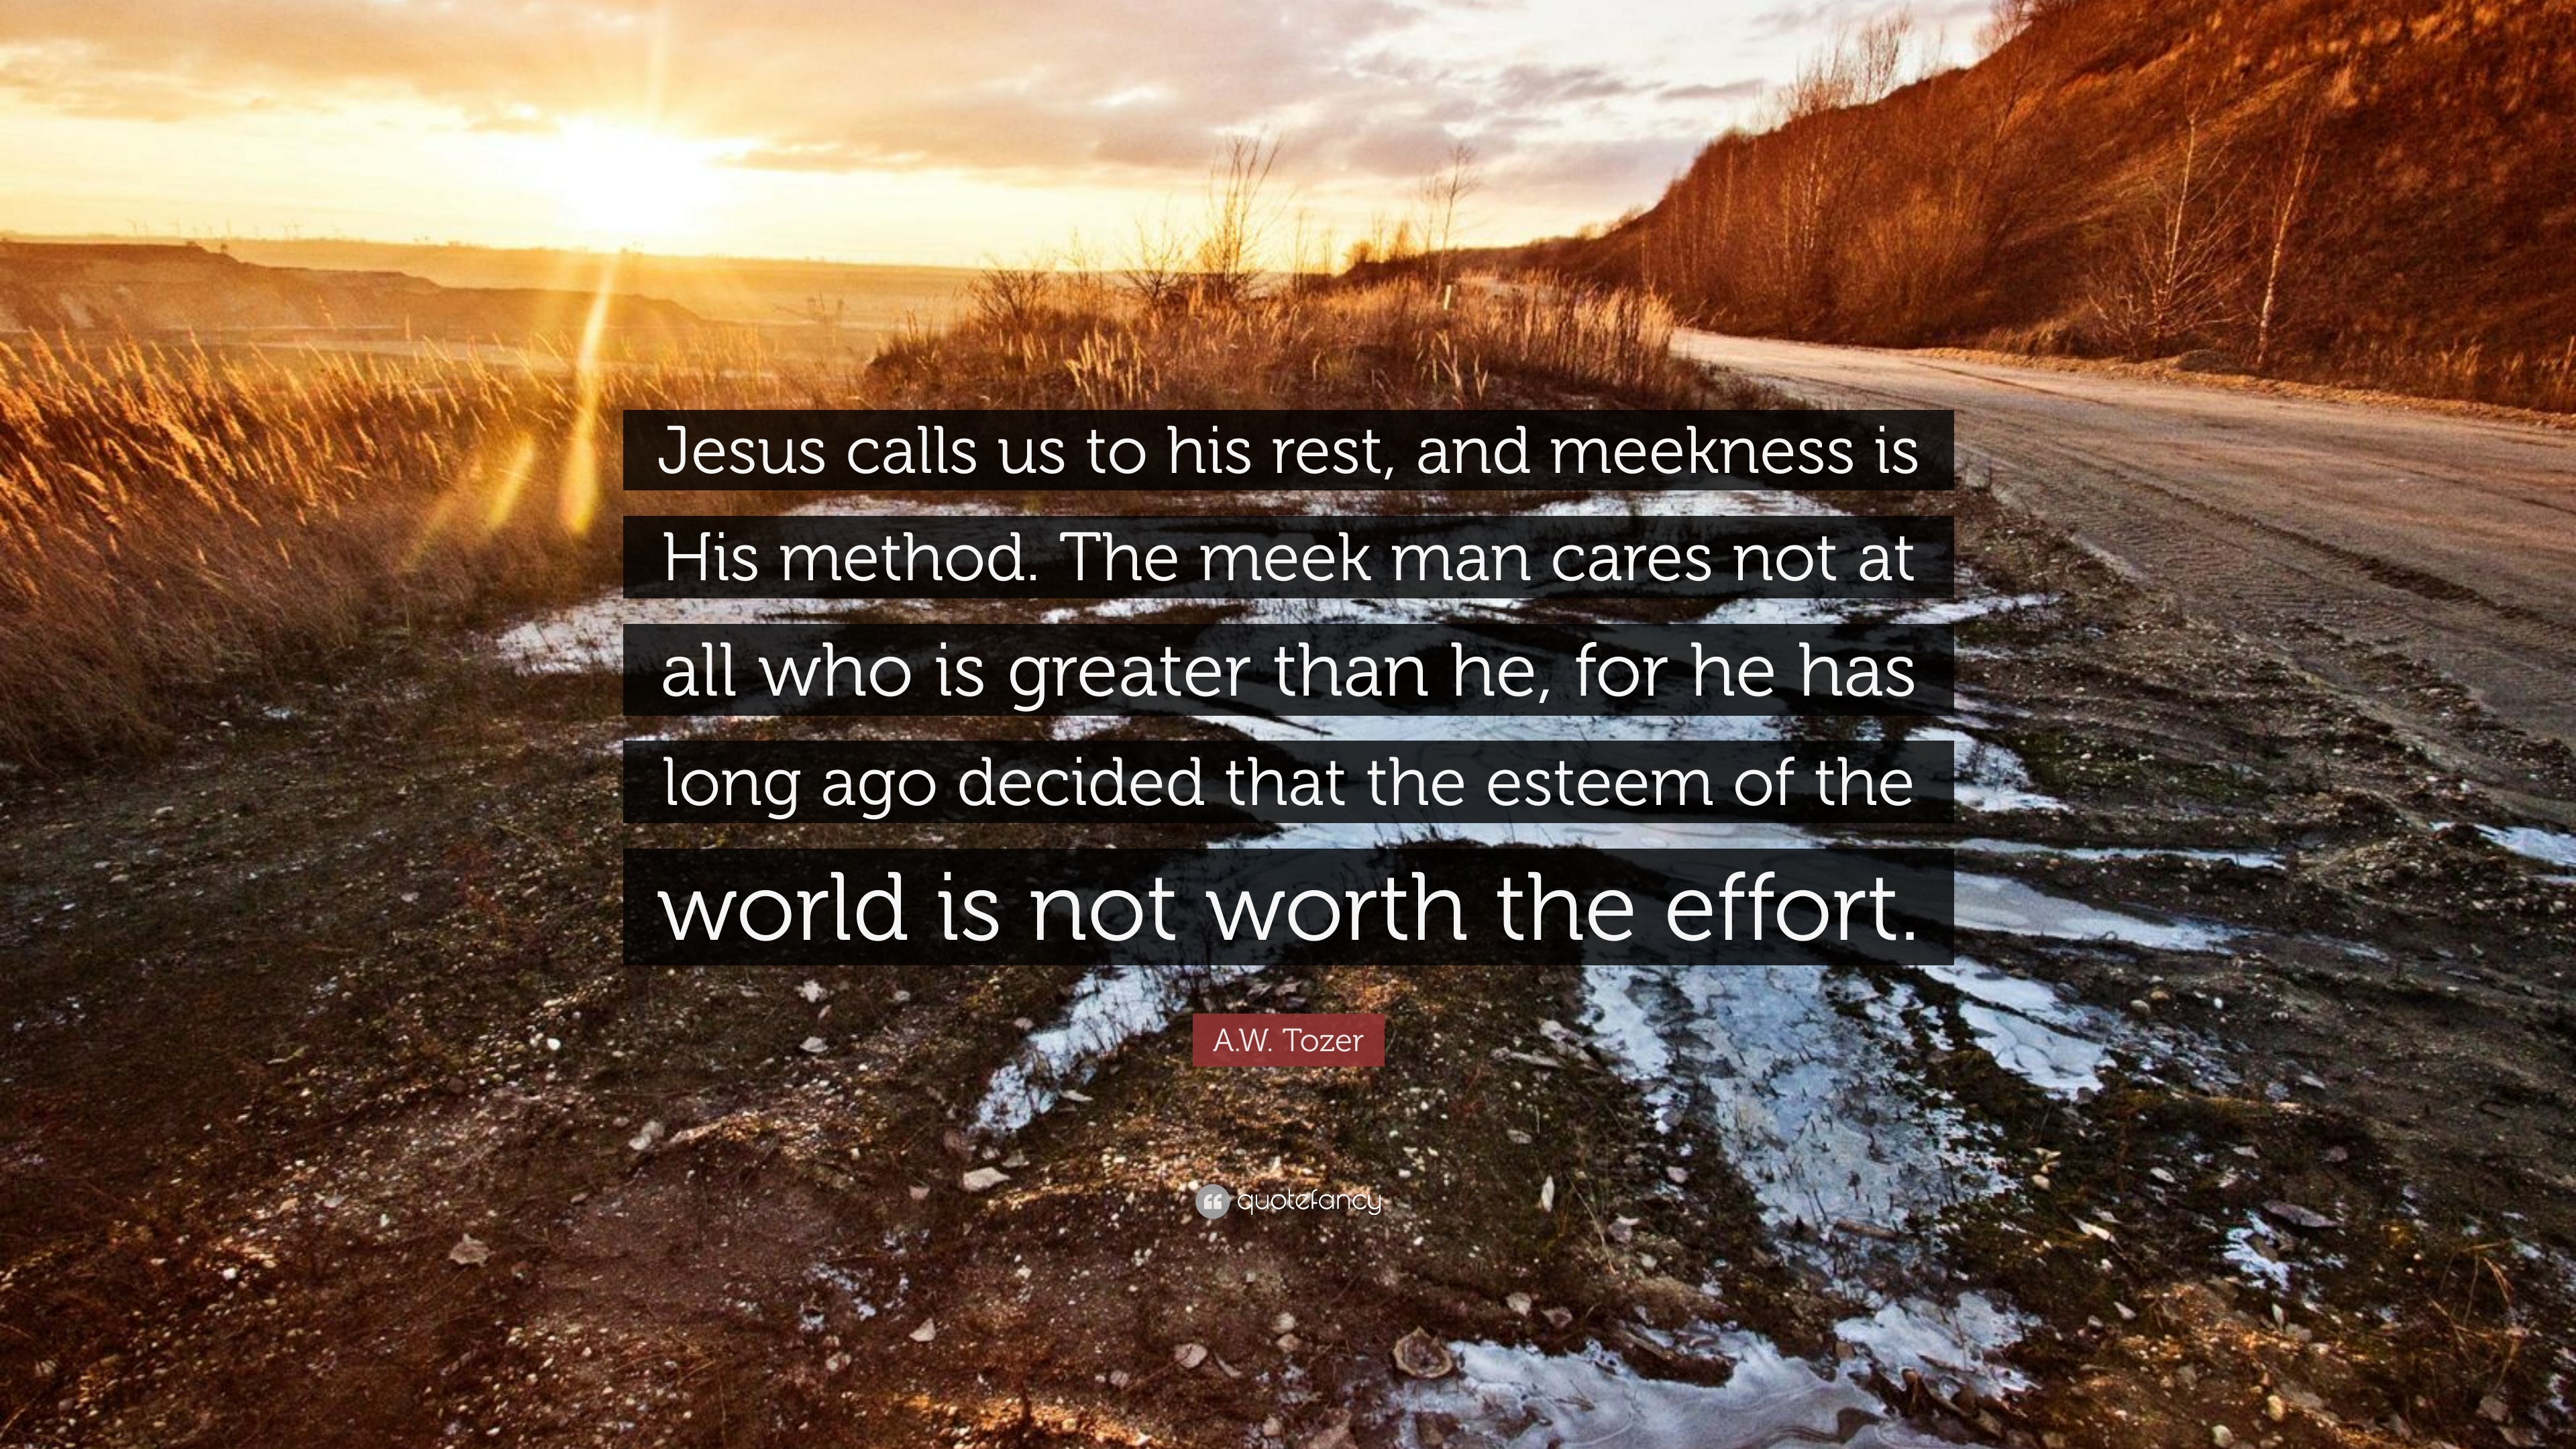 "A W Tozer Quotes A.W. Tozer Quote: ""Jesus calls us to his rest, and meekness is His  A W Tozer Quotes"